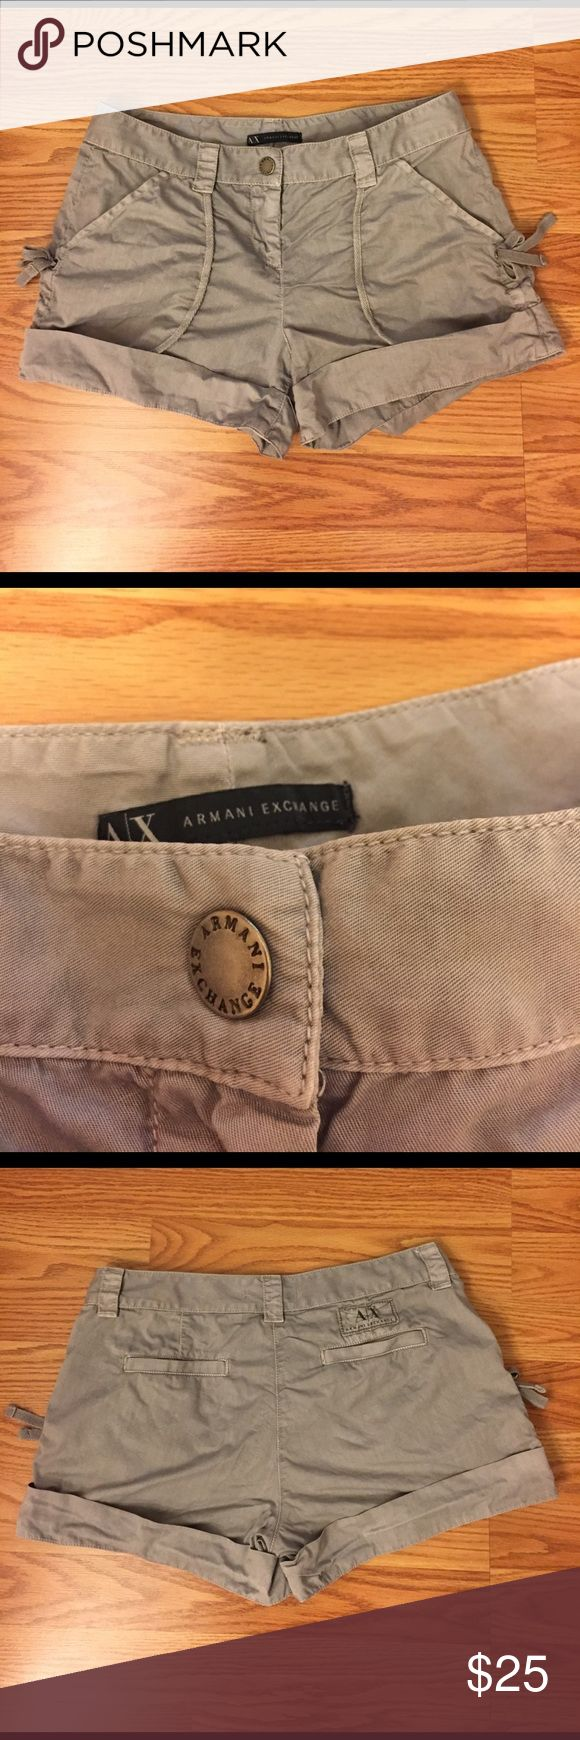 Armani Exchange cargo shorts Armani Exchange cargo shorts. Grayish light blue color. Silver hardware. Super comfortable. Will steam before shipping out! Not sure why, but cannot locate label with size. I believe they are a size 0. Will provide exact measurements upon request! Armani Exchange Shorts Cargos